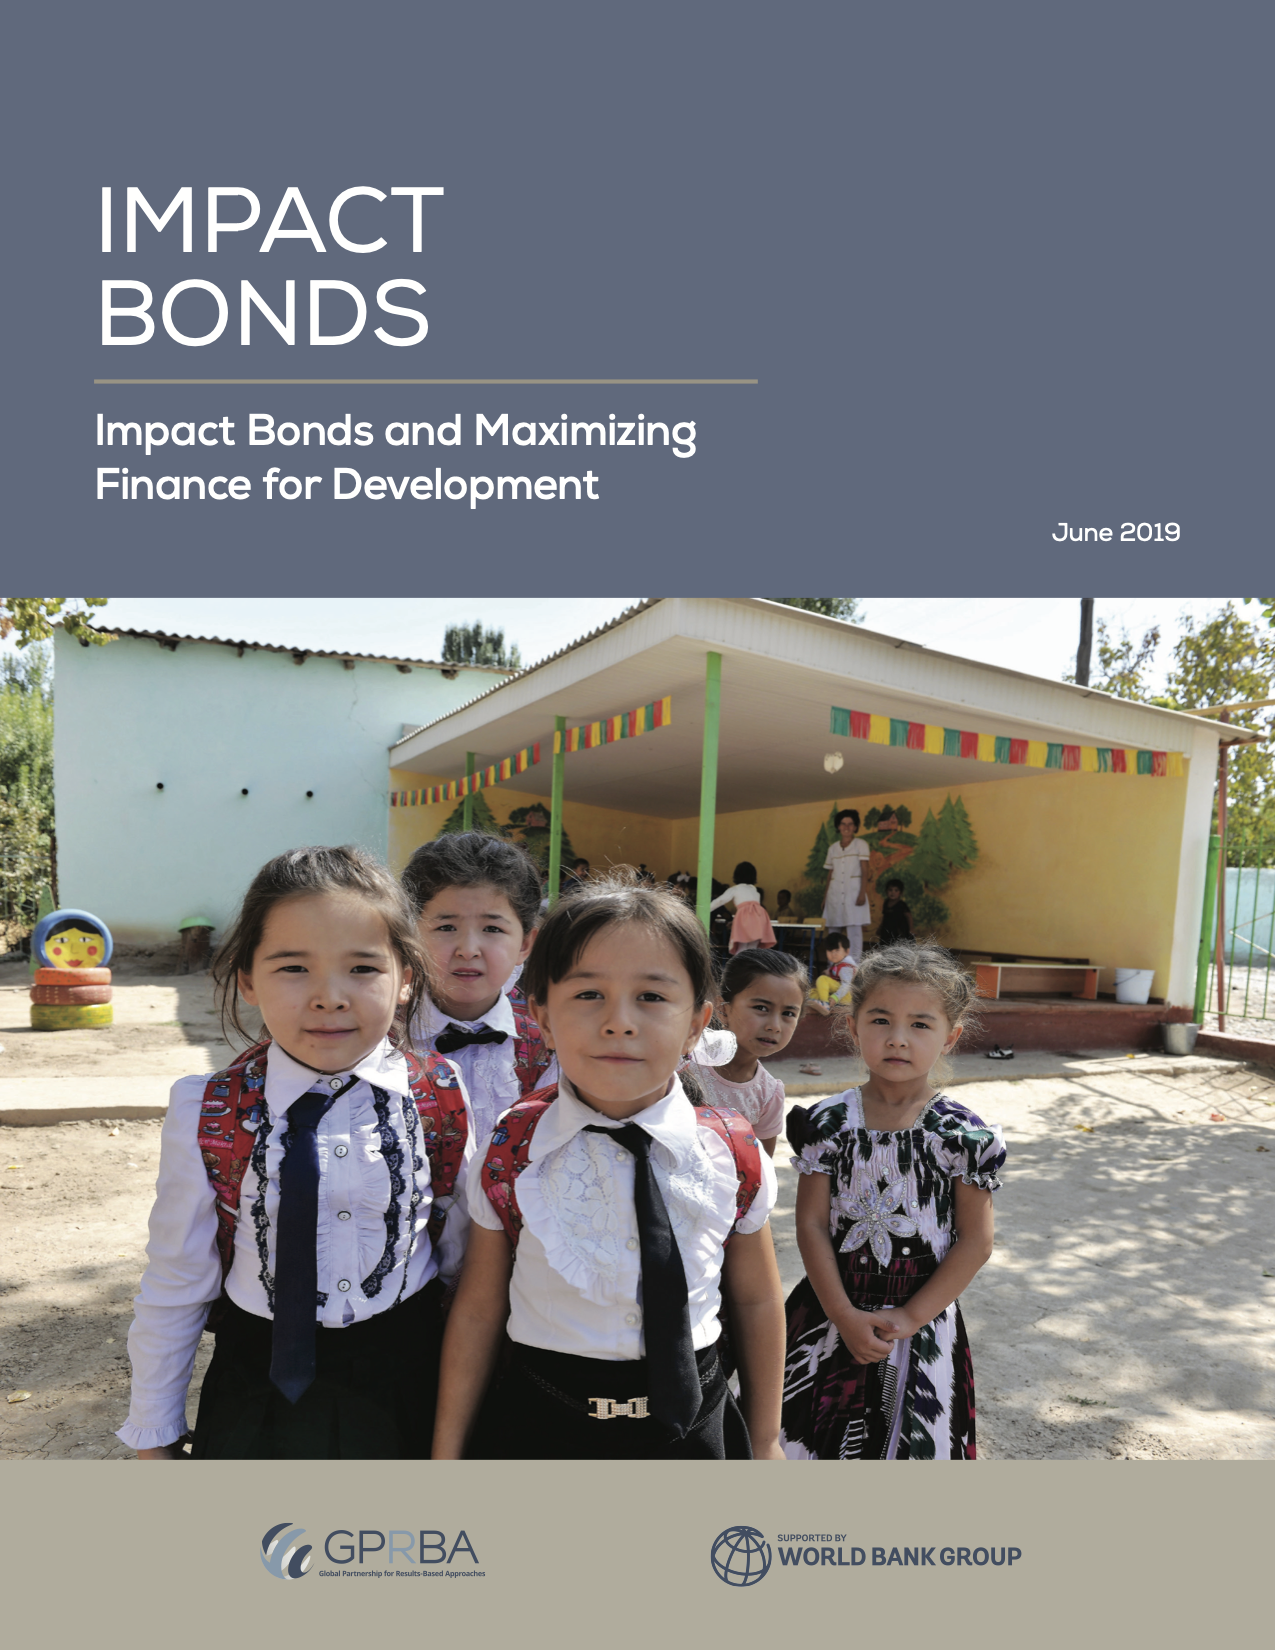 Impact Bonds and Maximizing Finance for Development